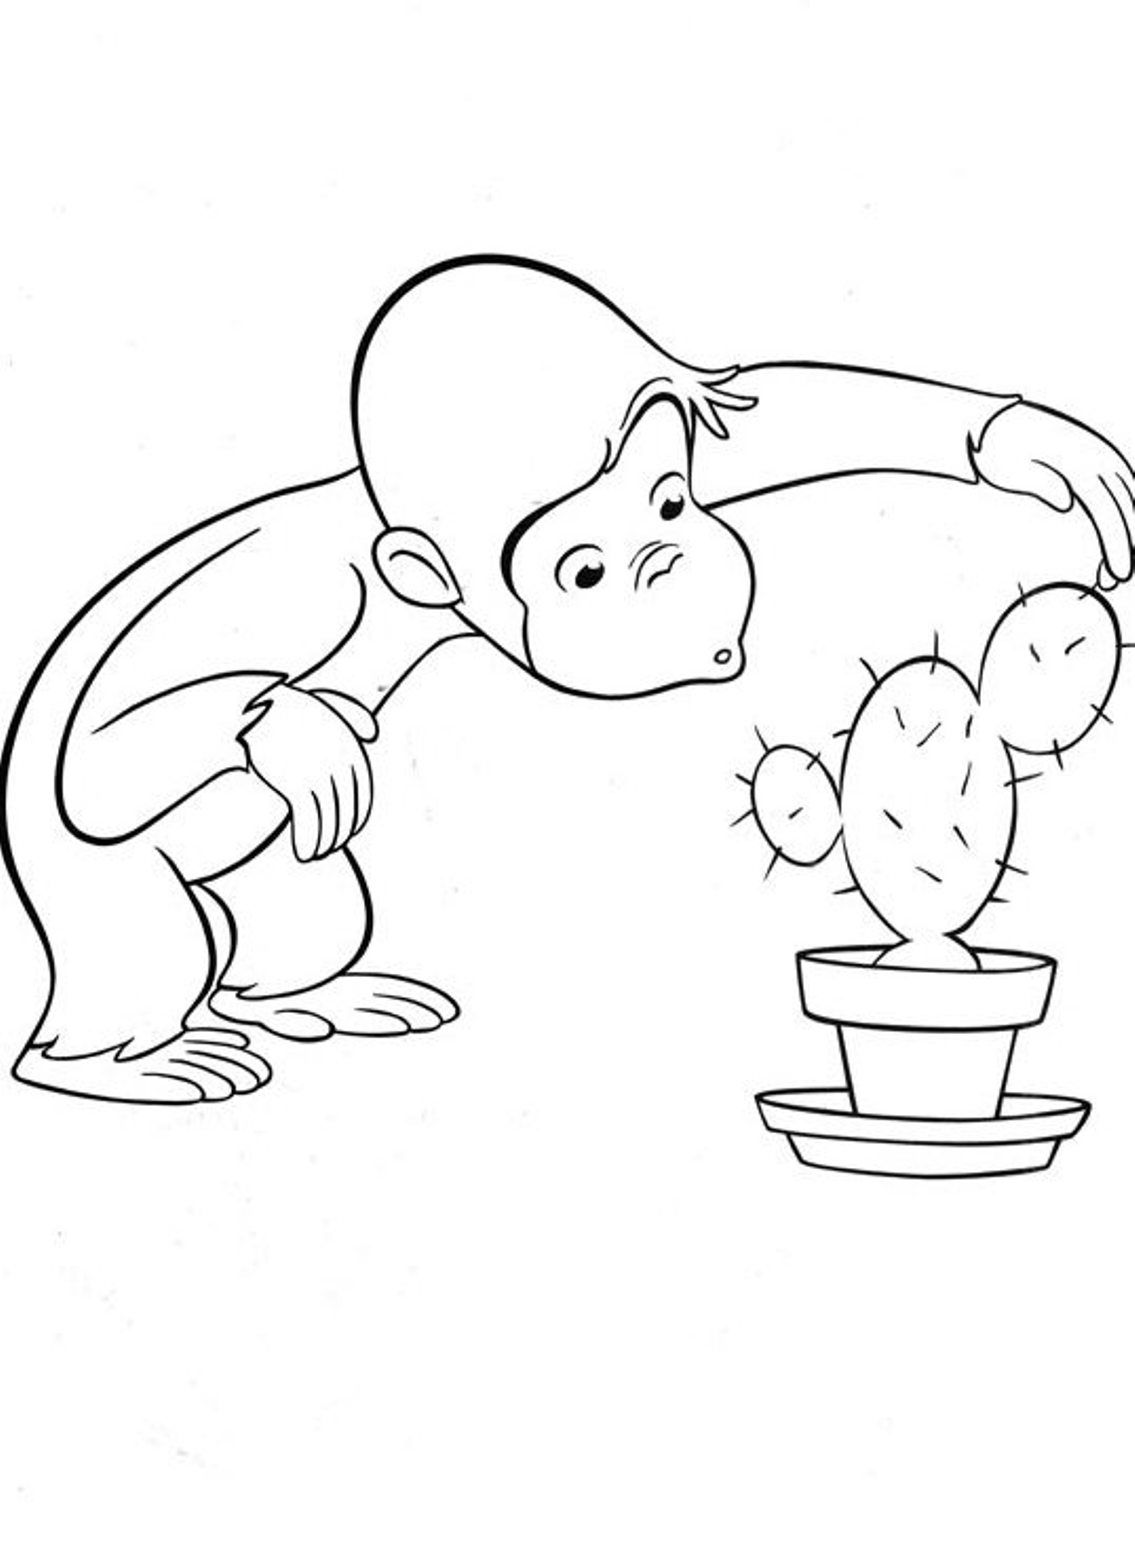 Curious George Coloring Pages To Print